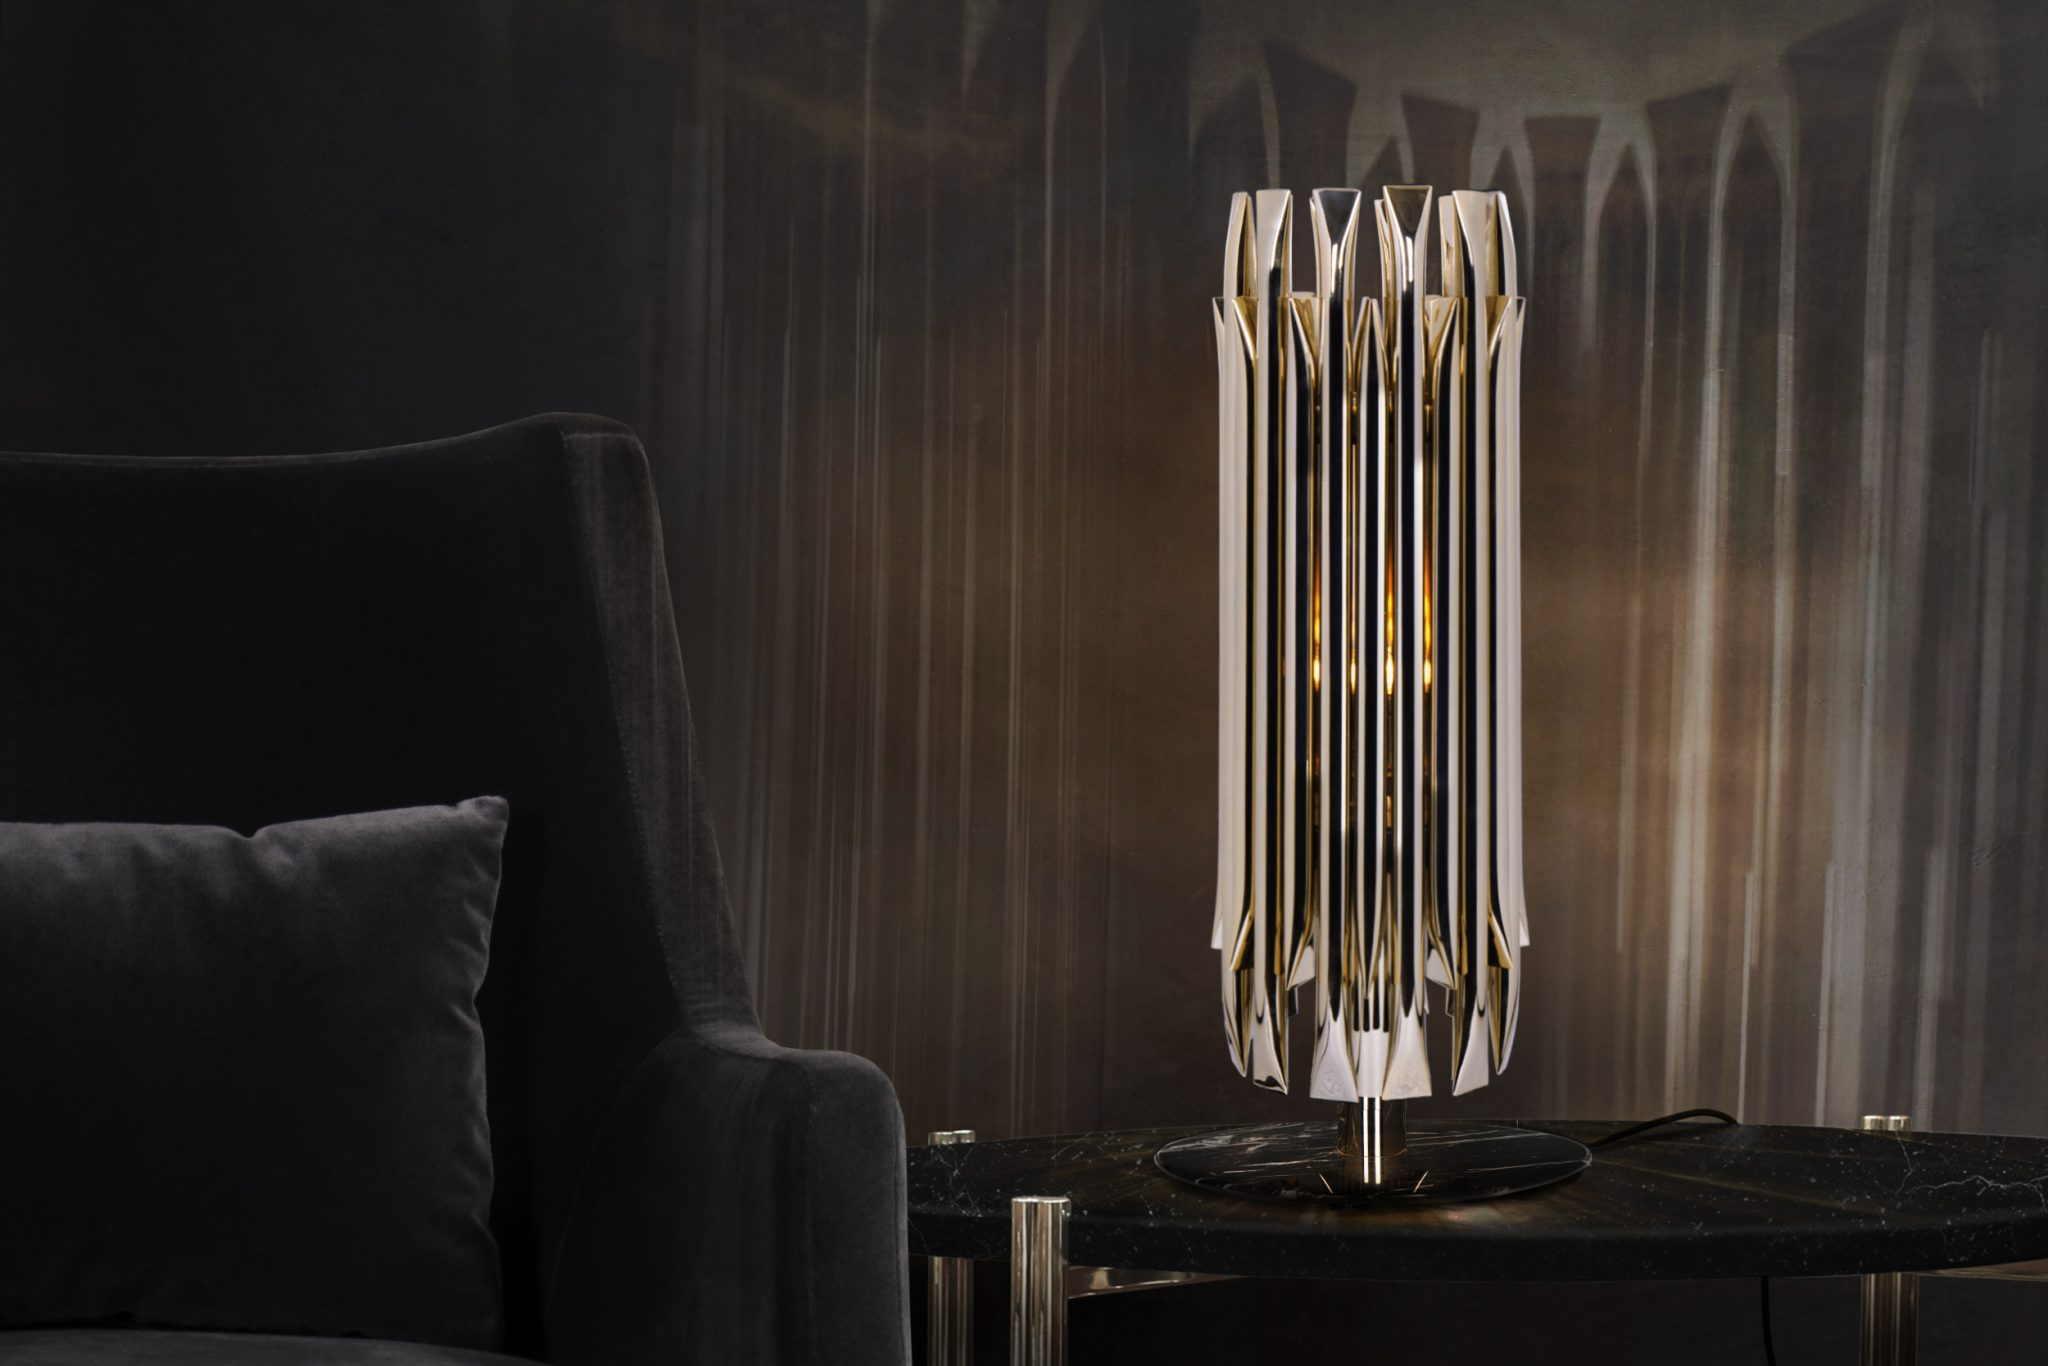 UNIQUE LIGHTING DESIGN FOR LIVING ROOM AMBIANCE